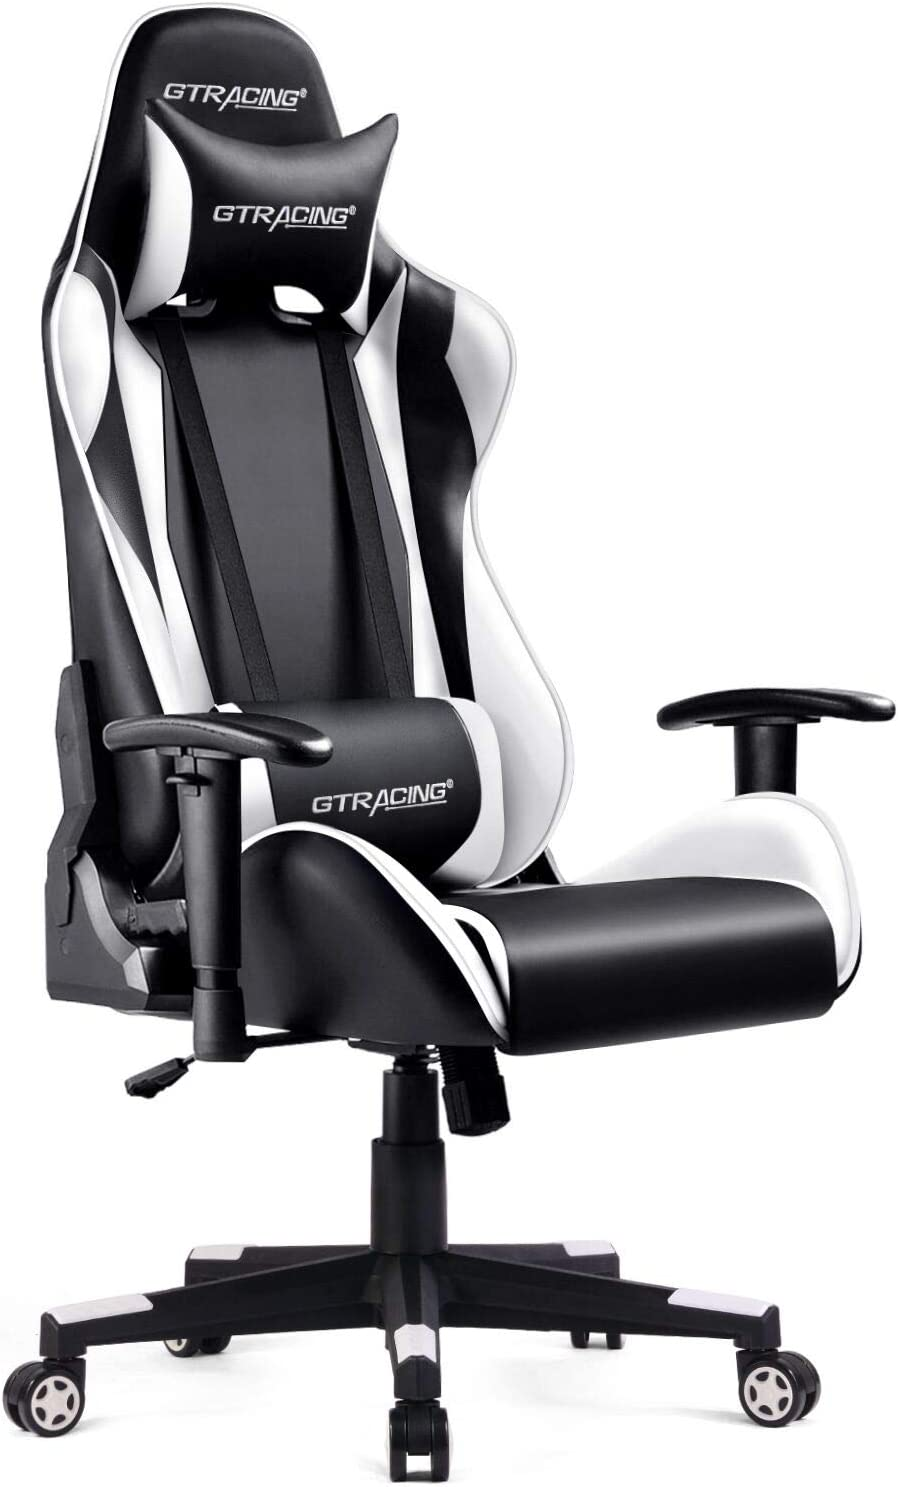 GTRACING Gaming Chair Racing Computer Multi-Function Executive Chair with Headrest Lumbar Support Pillows Recliner Swivel Rocker Tilt E-Sports Black &White